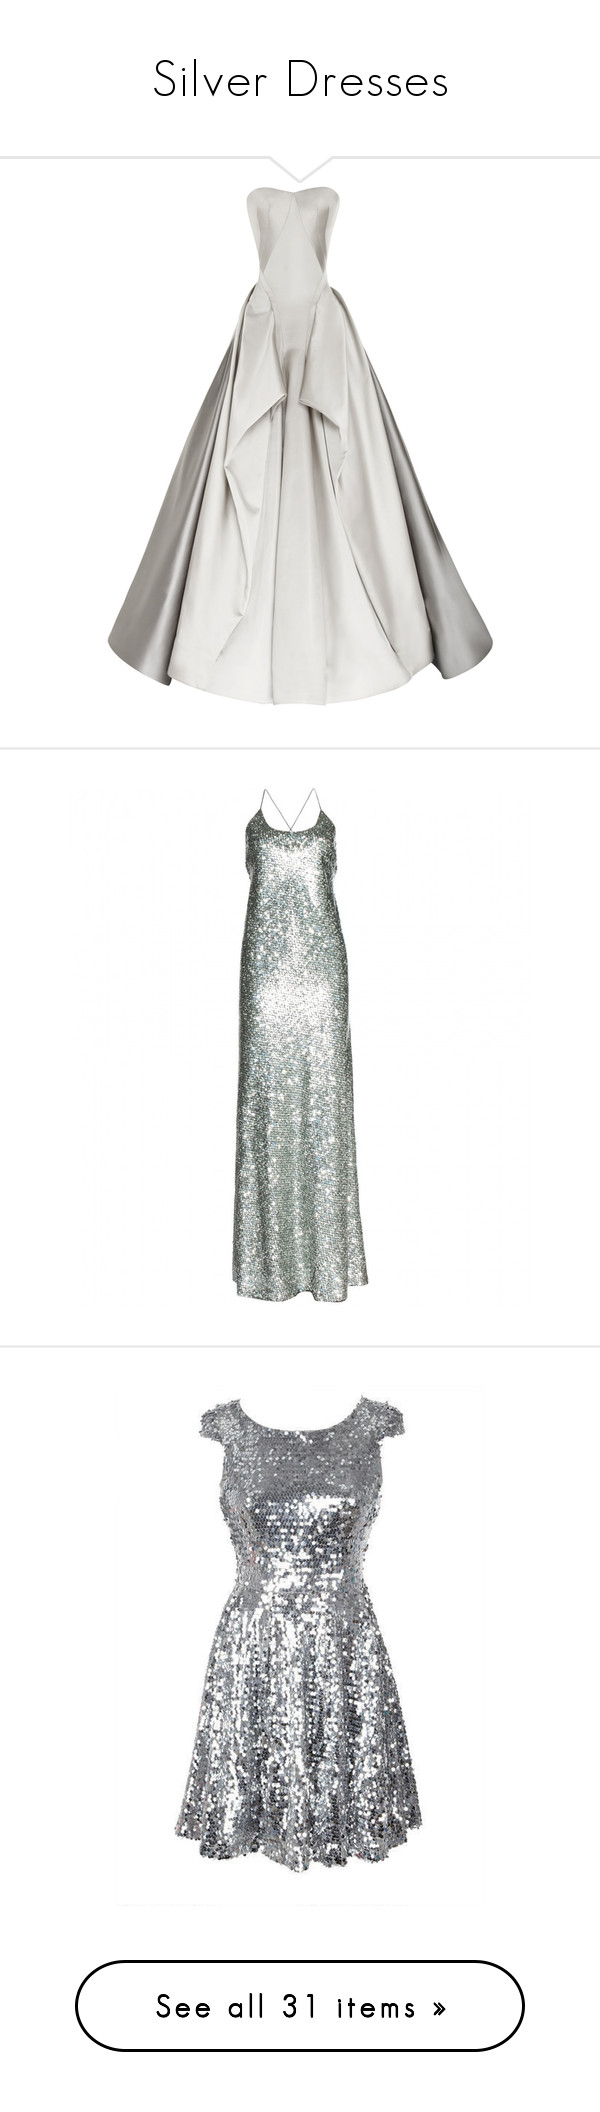 """Silver Dresses"" by disneydressing ❤ liked on Polyvore featuring dresses, gowns, long dresses, ball gowns, dove grey, strapless sweetheart dress, pleated dress, full skirt, zac posen gowns and pleated gown"